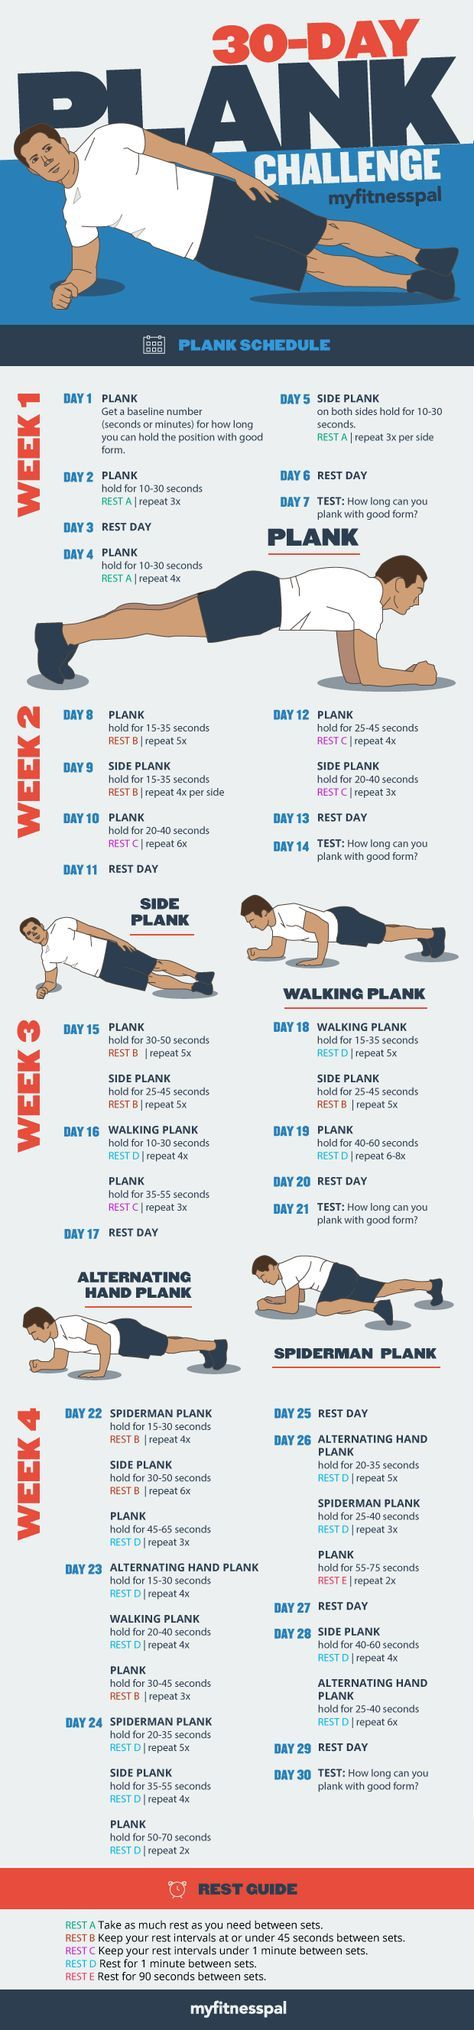 Want stronger arms, back, legs and butt this month? Take our 30-Day Plank Challe…